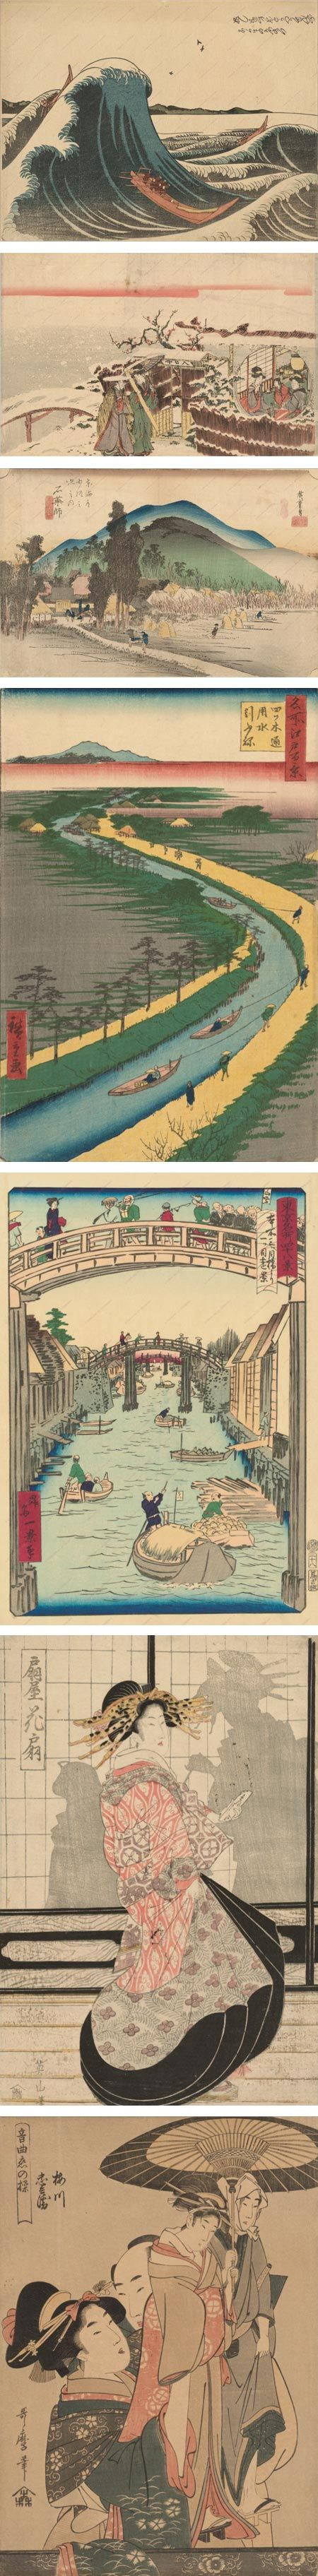 Japanese Prints of the 18th and 19th Century